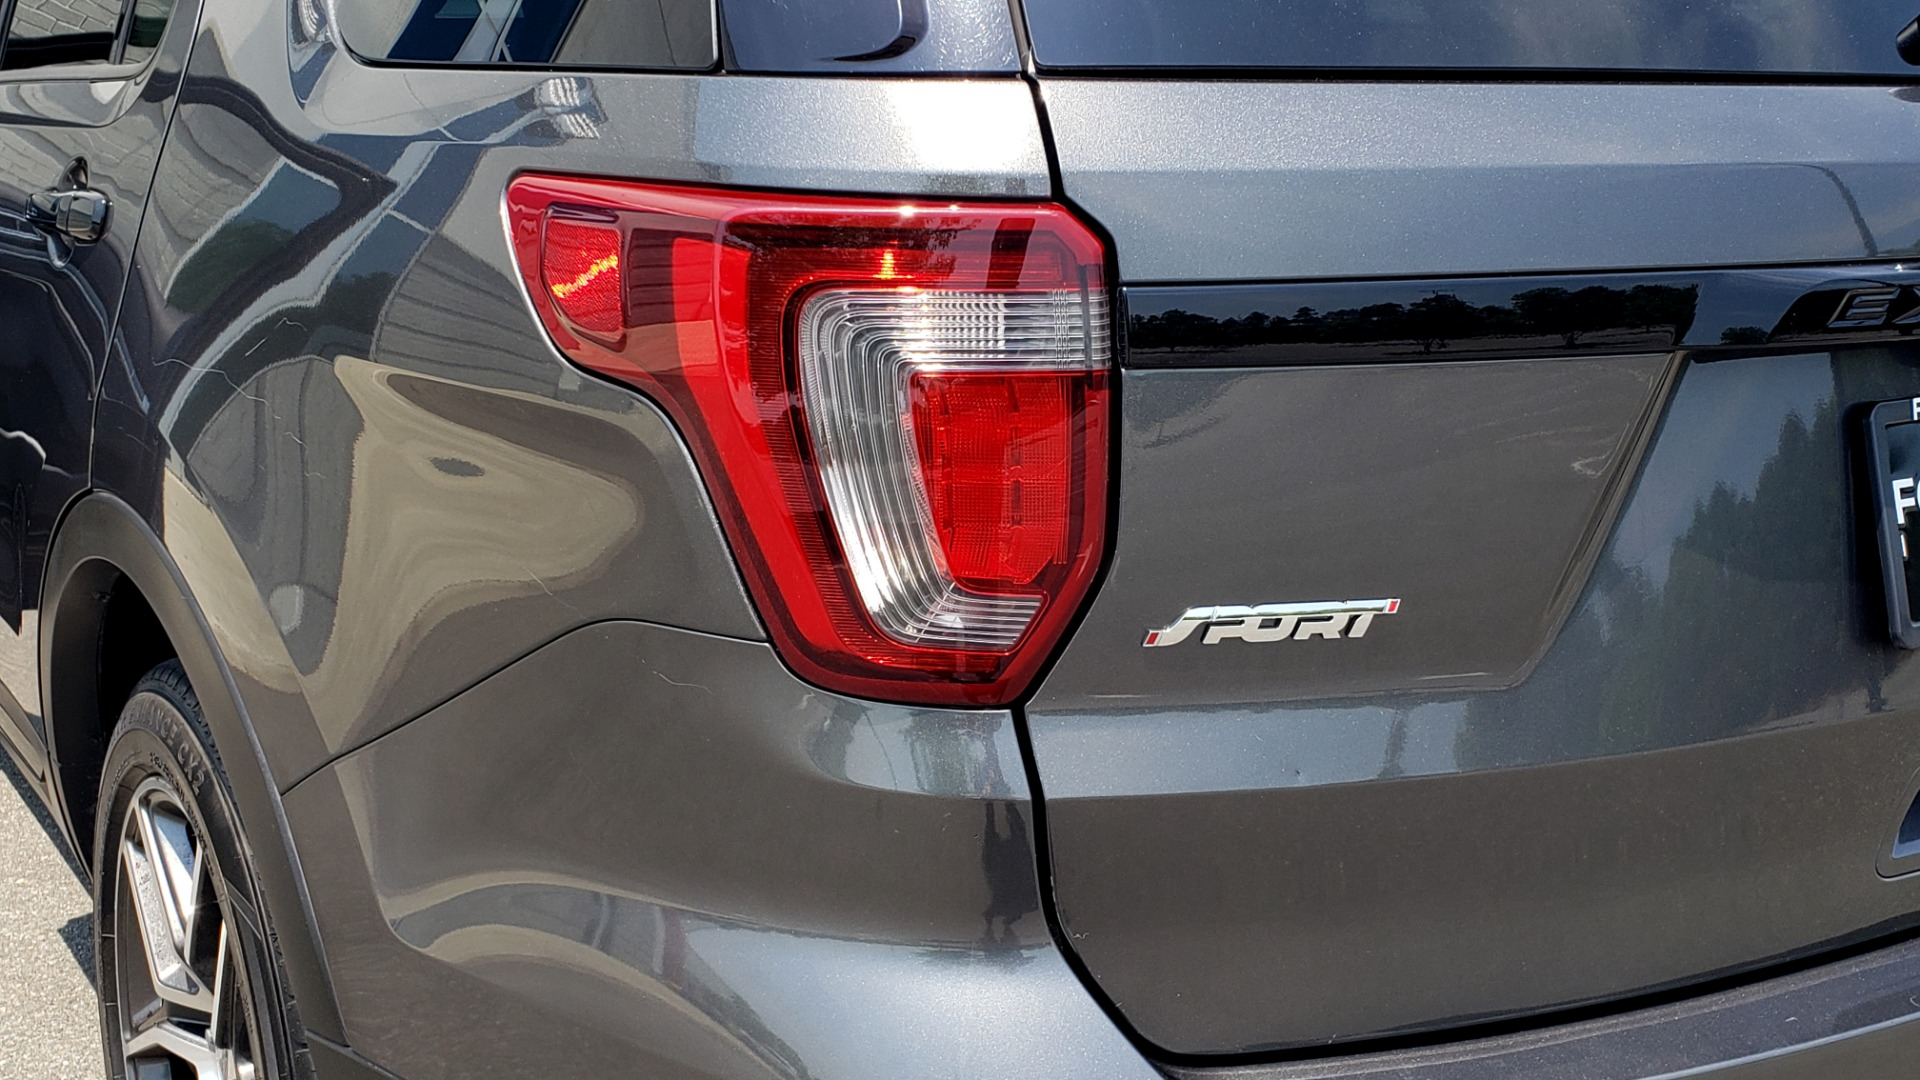 Used 2016 Ford EXPLORER SPORT 4WD / 3.5L ECOBOOST / 6-SPD AUTO / BSM / REARVIEW for sale Sold at Formula Imports in Charlotte NC 28227 27